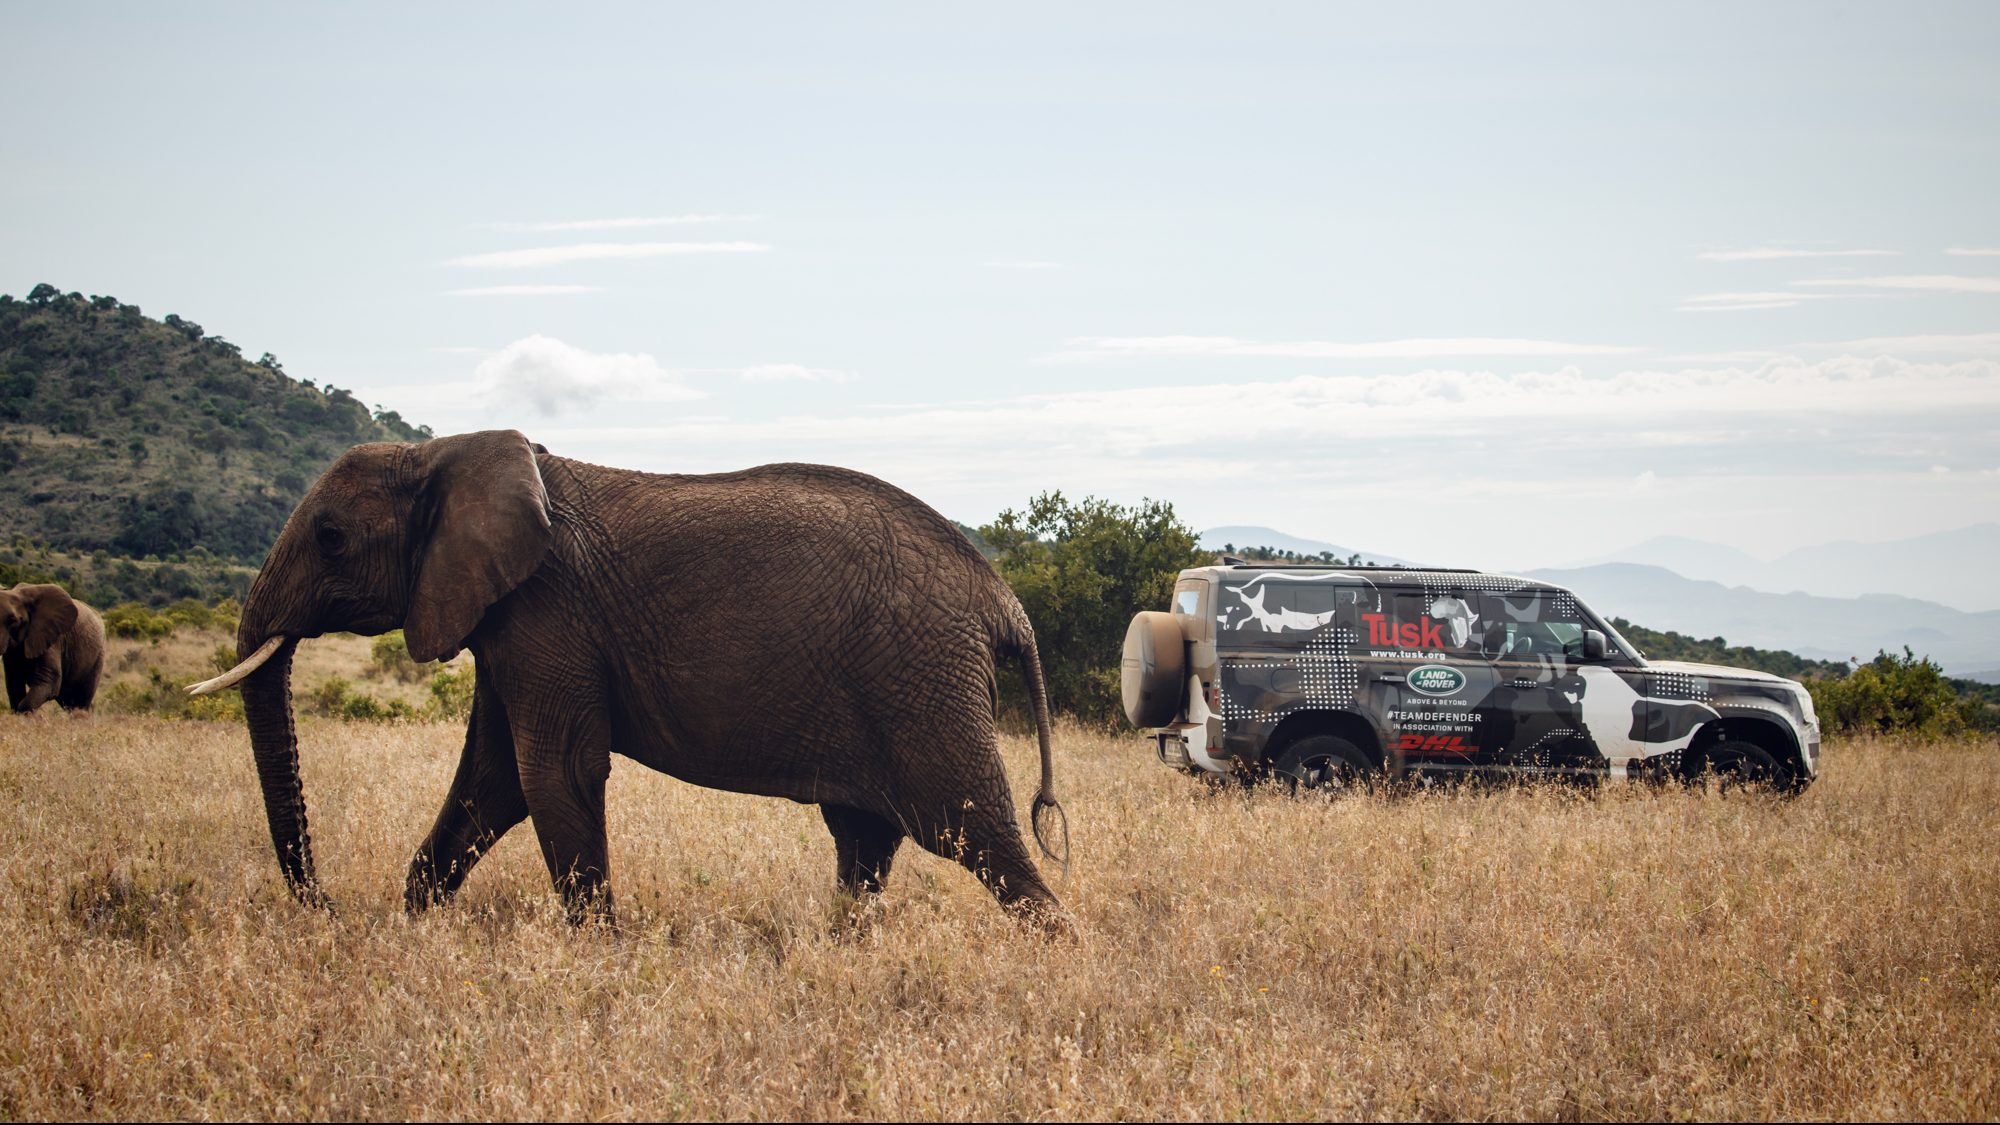 Land Rover's 2020 Defender, and The Elephant in The Room